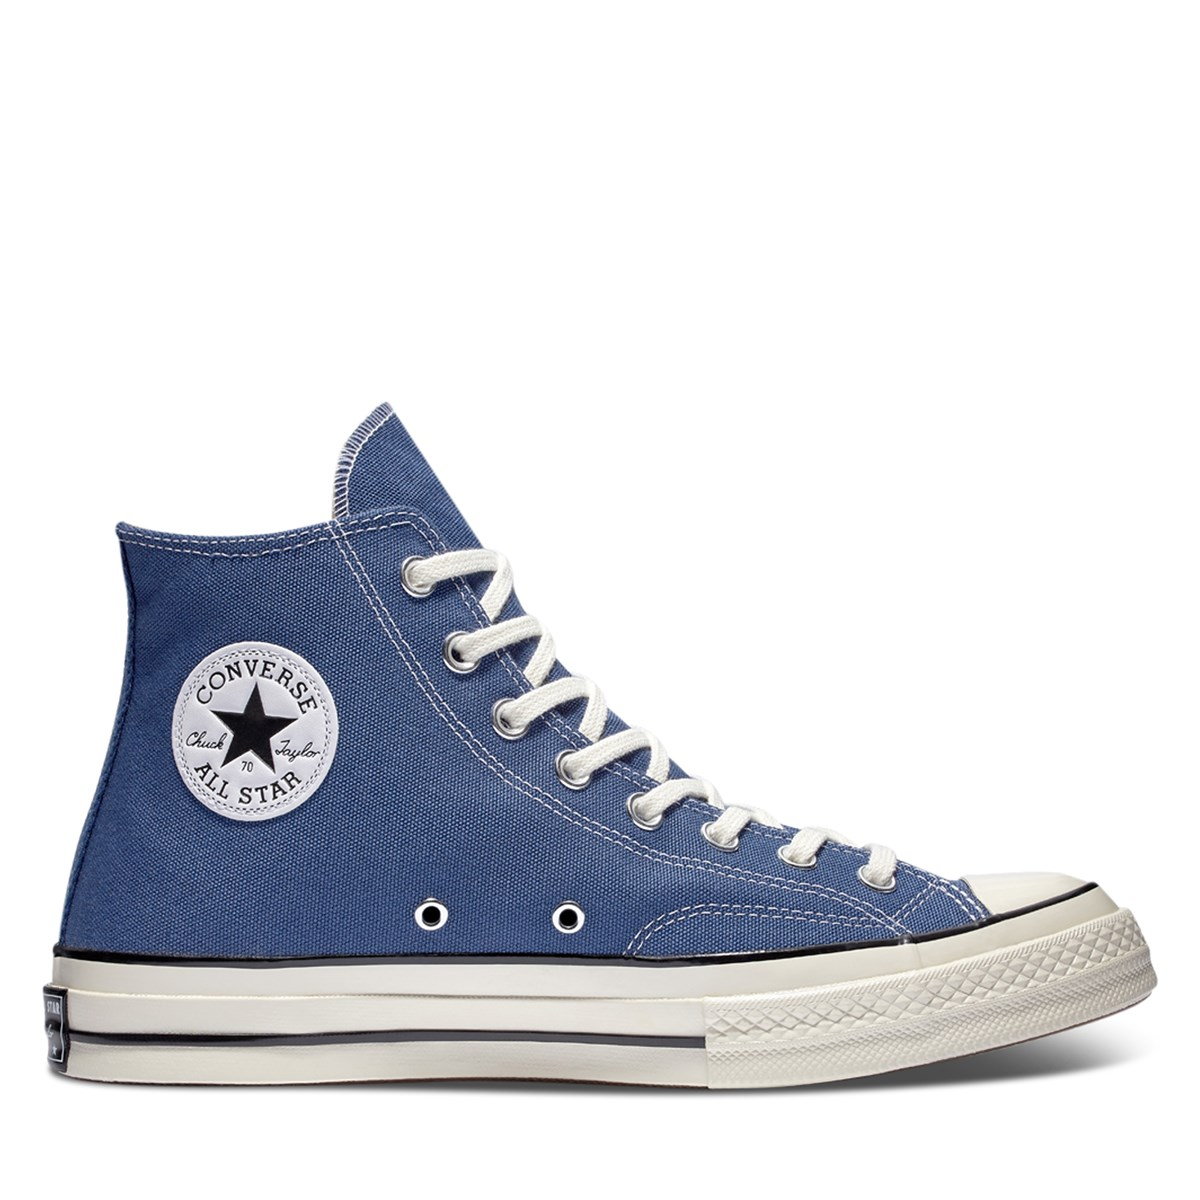 Men's Chuck 70 Hi Sneakers in Navy